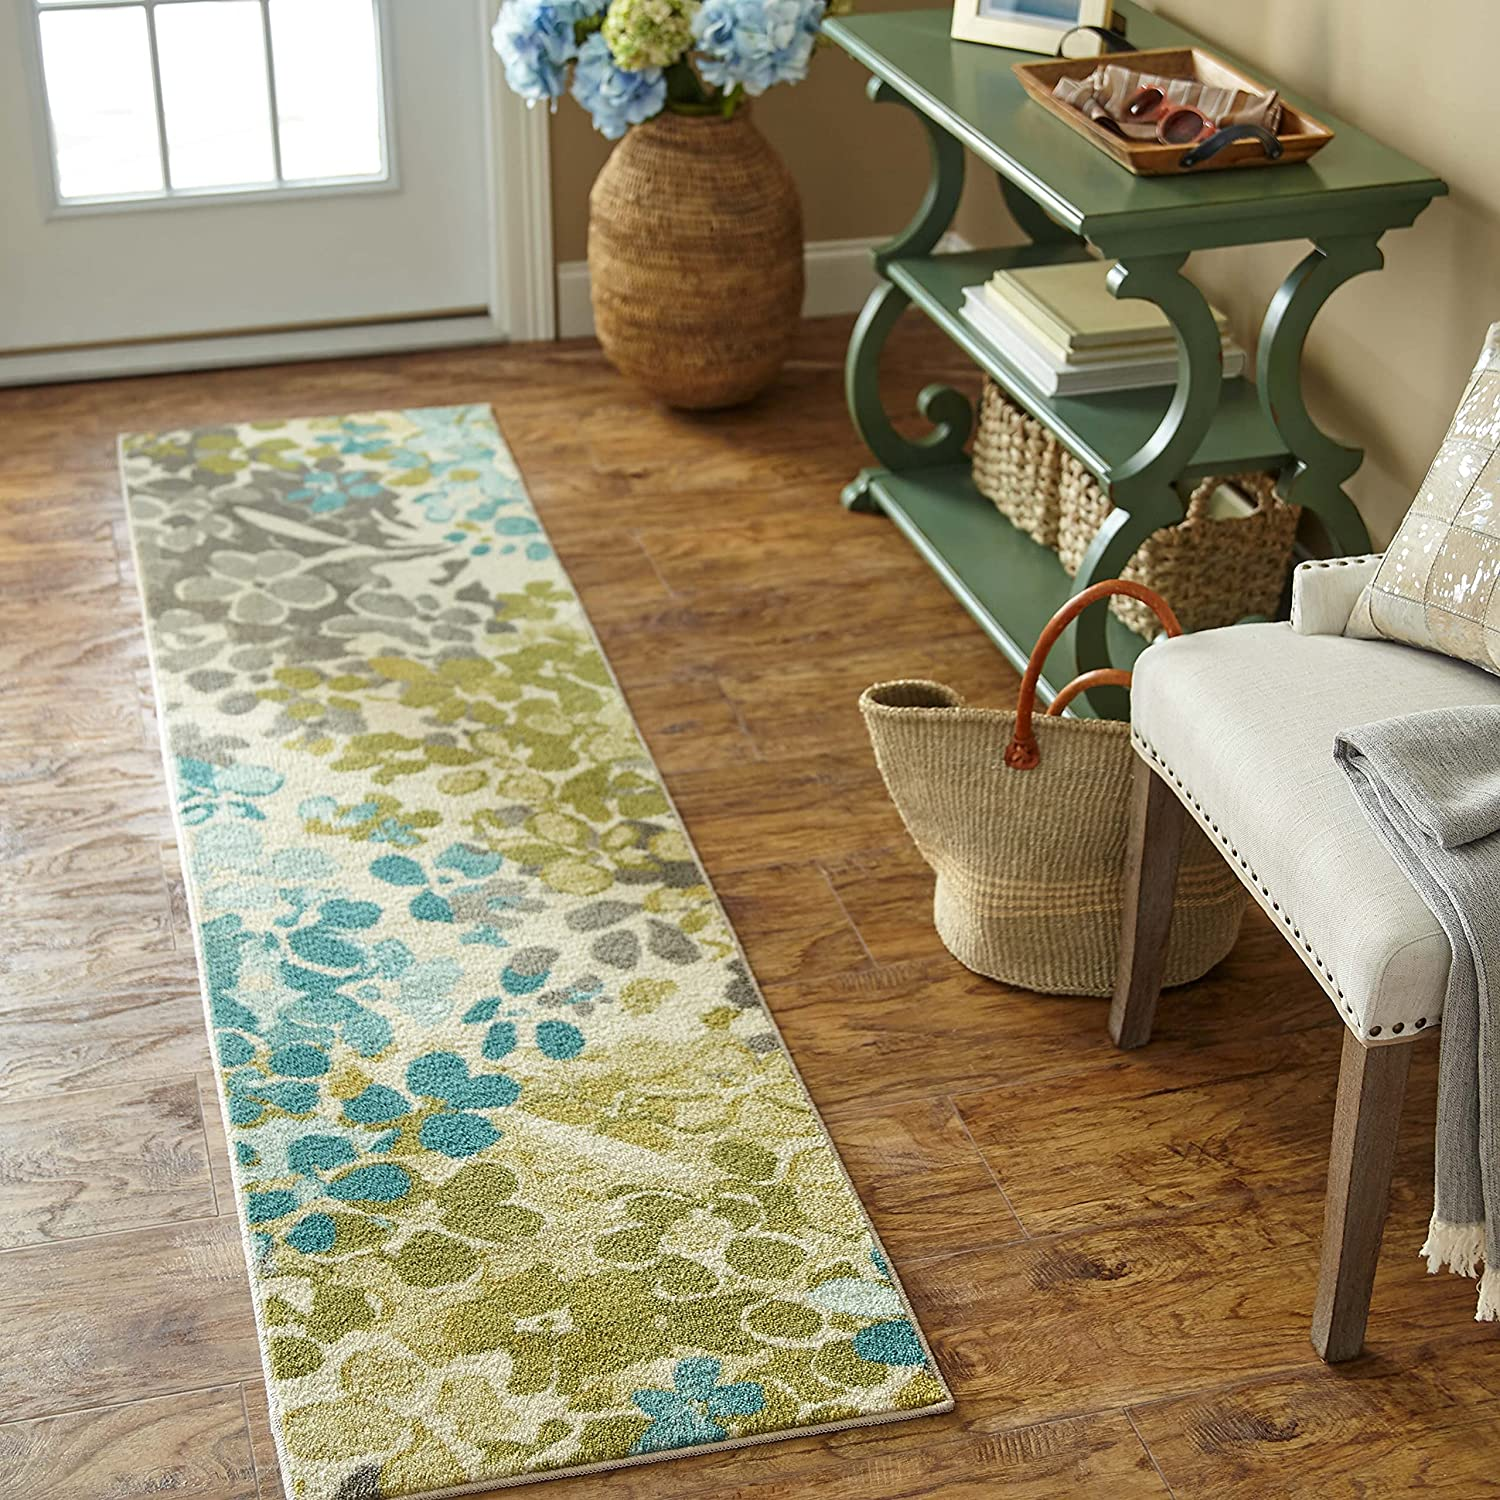 Mohawk Home Aurora Radiance Aqua Abstract Floral Runner Area Rug, 1'8